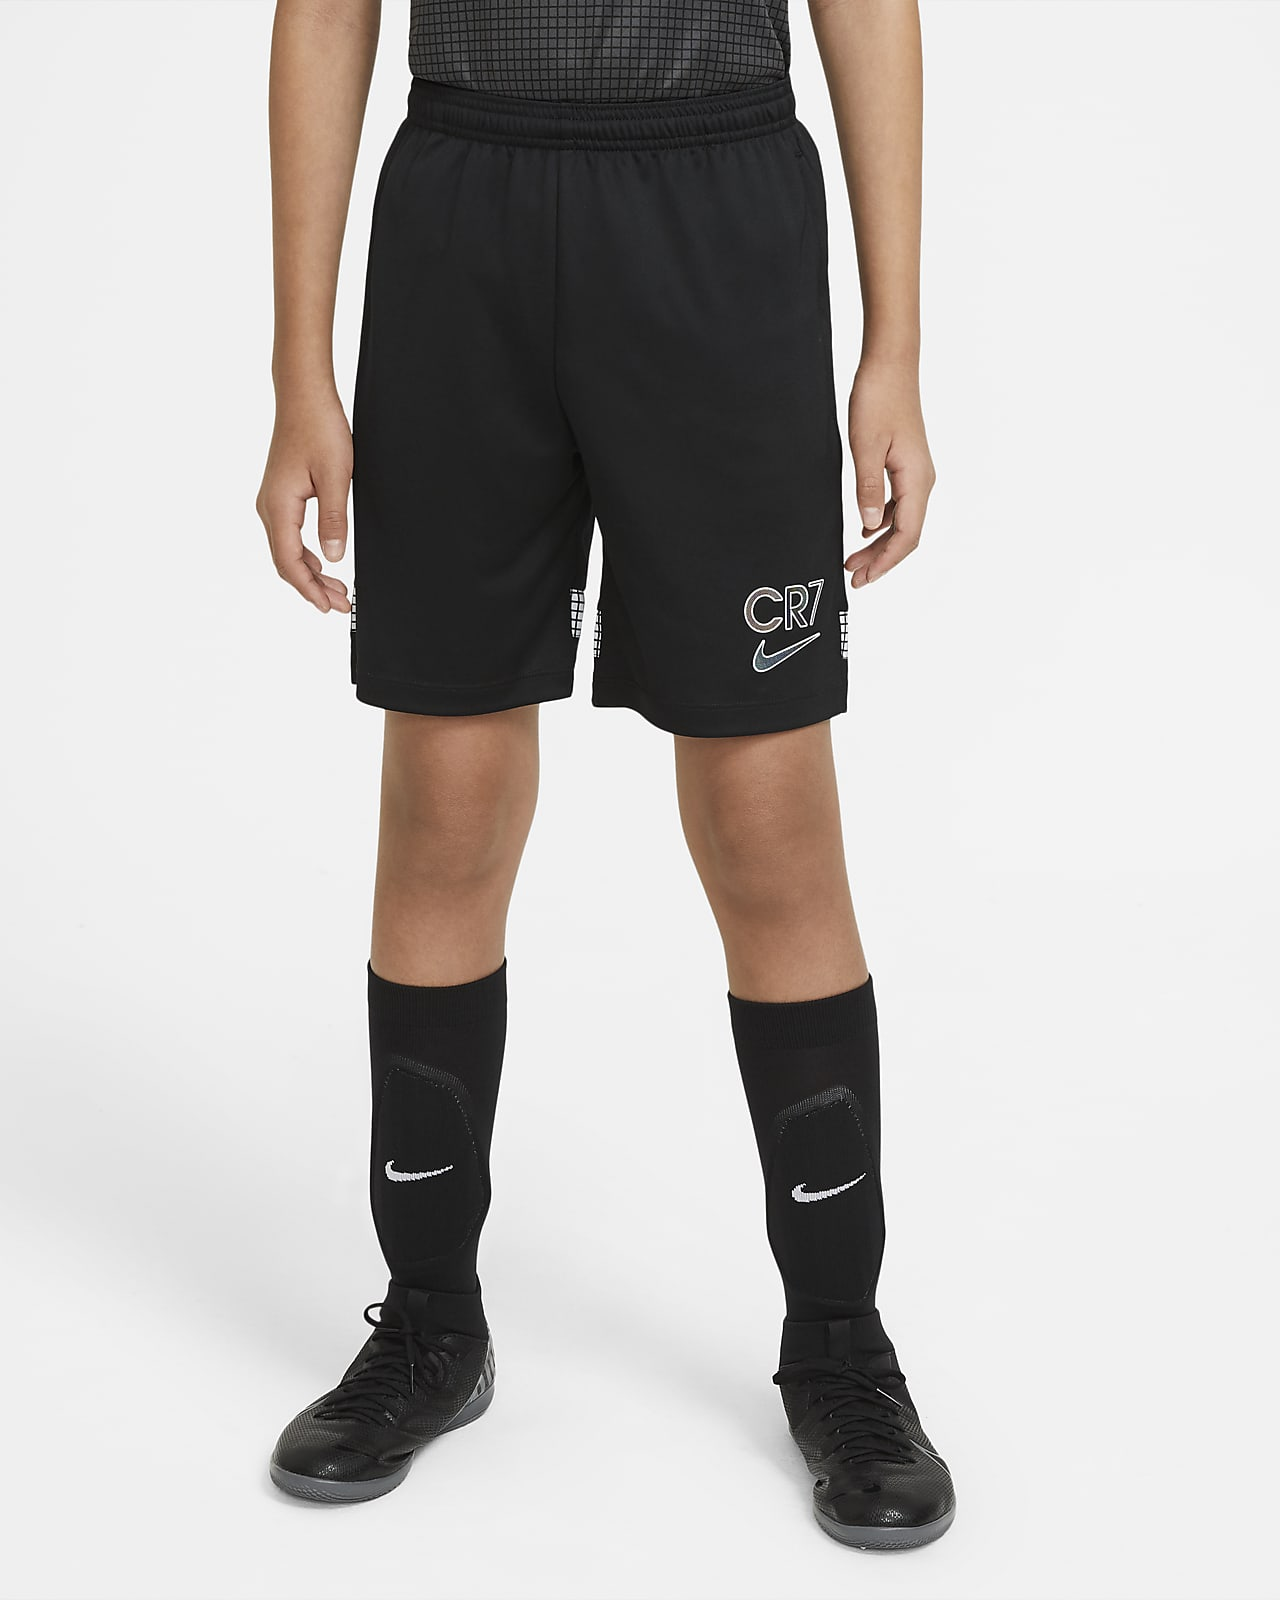 Short de football en maille Nike Dri-FIT CR7 pour Enfant plus âgé